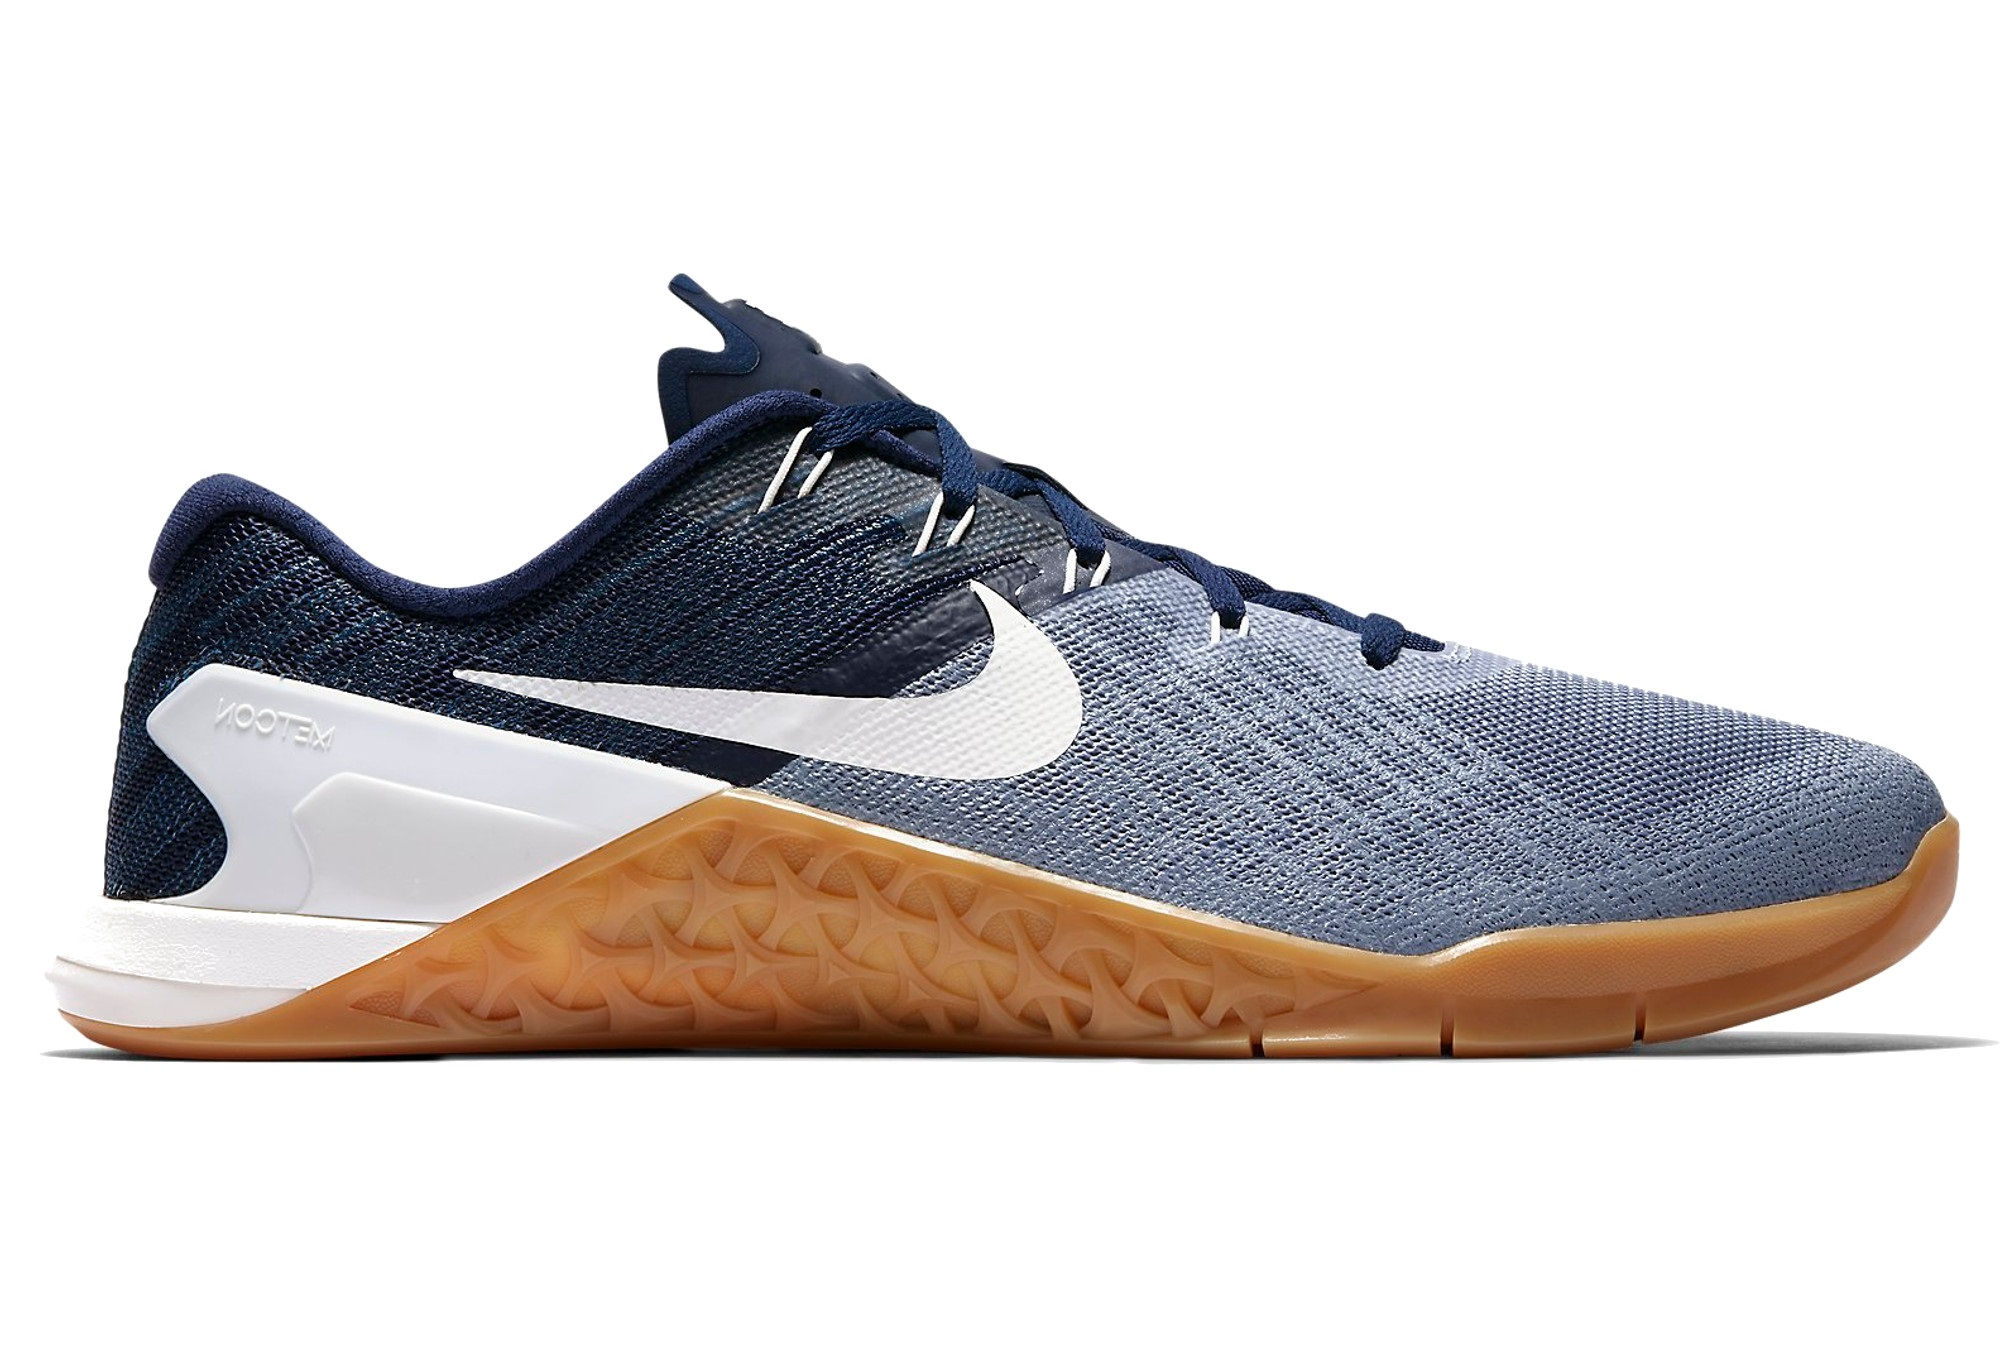 chaussures de cross training nike metcon 3 blanc bleu. Black Bedroom Furniture Sets. Home Design Ideas